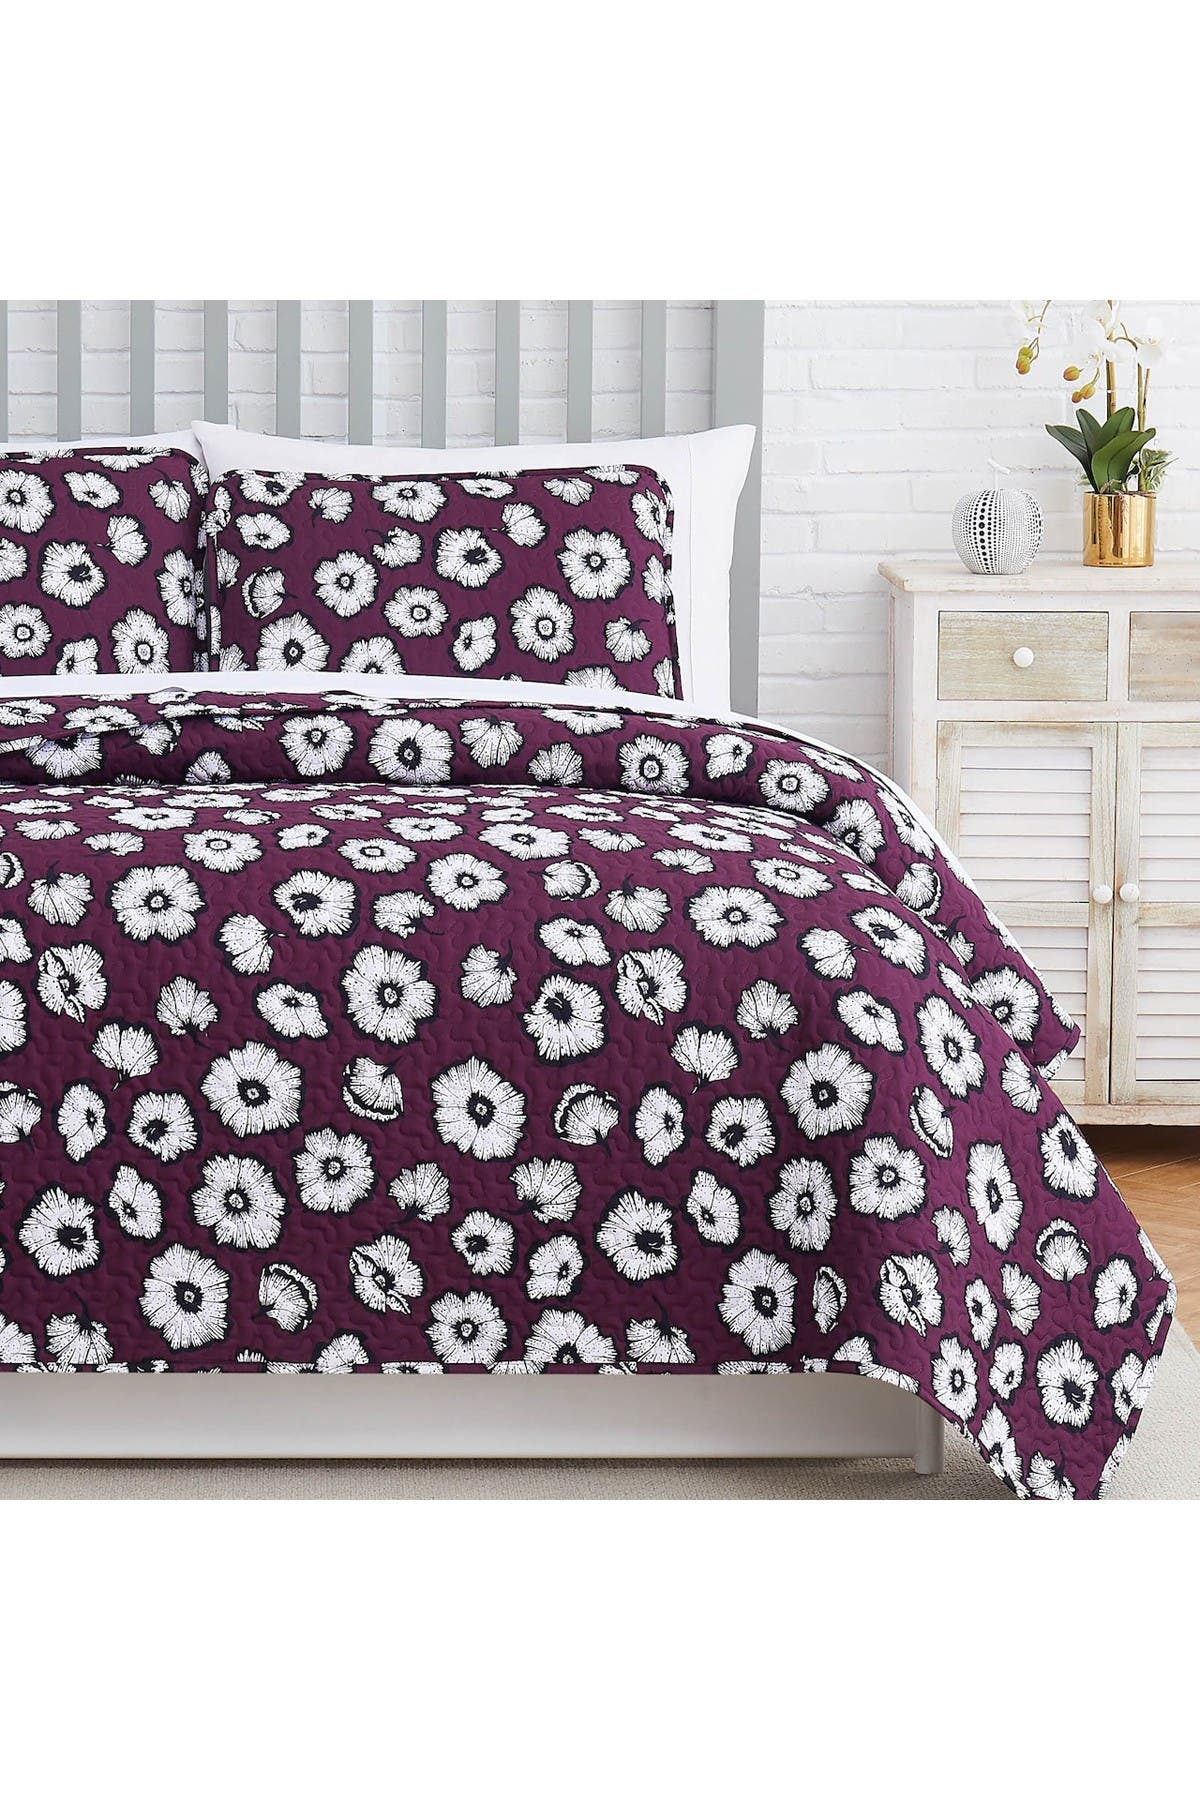 Image of SOUTHSHORE FINE LINENS Essence Oversized Quilt Cover Set - Purple - King/California King